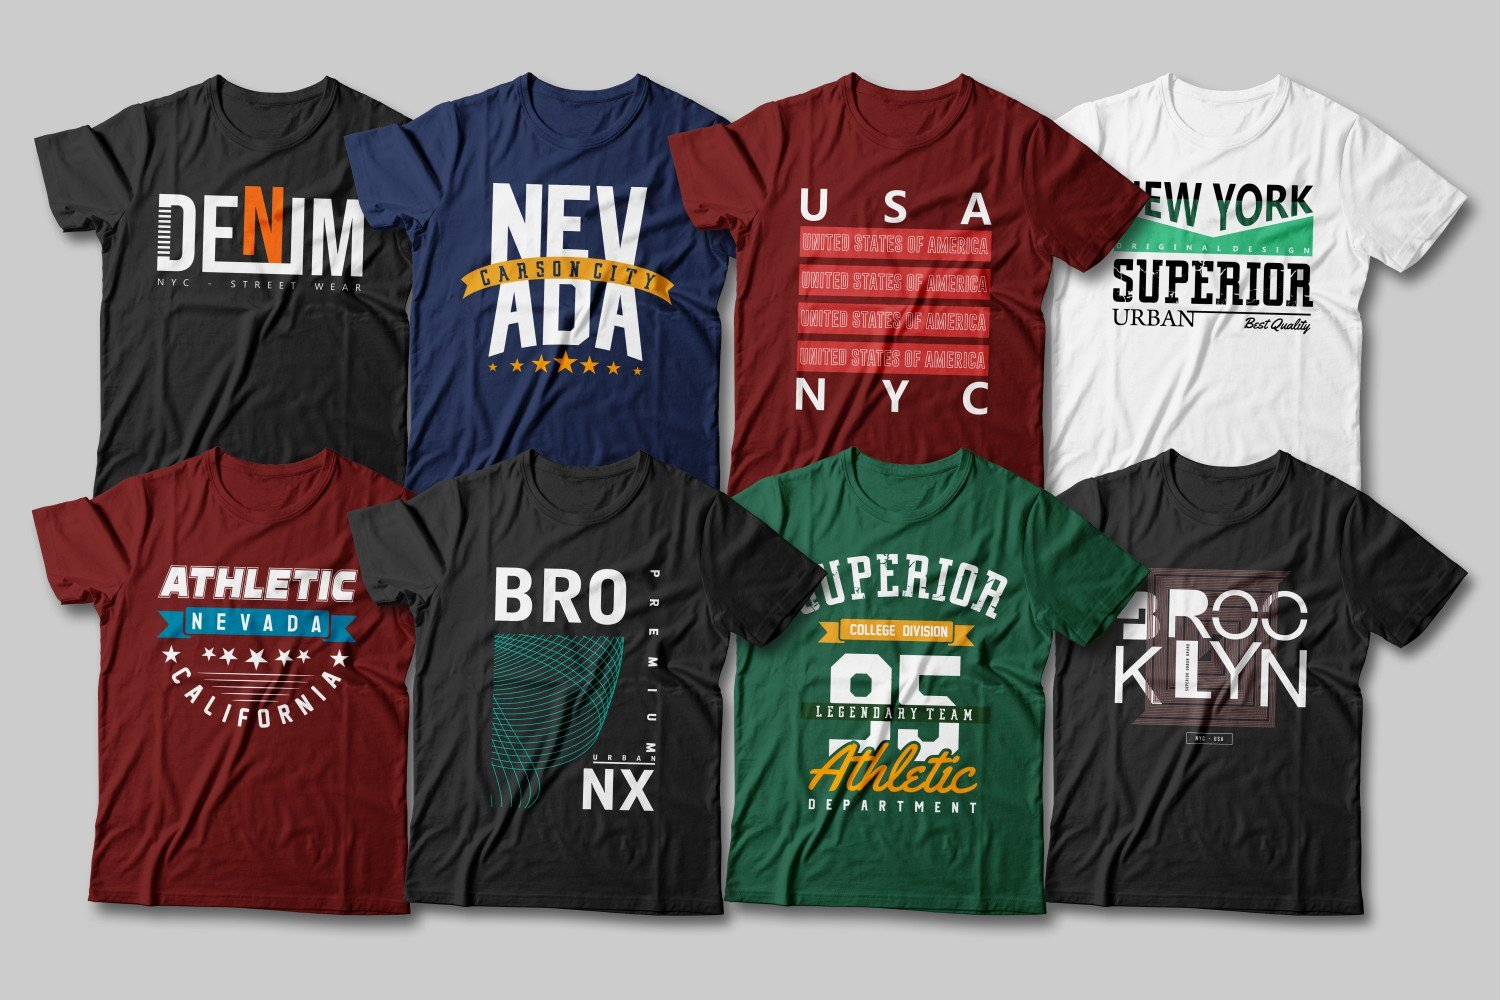 Multicolored T-shirts with inscriptions in various fonts.